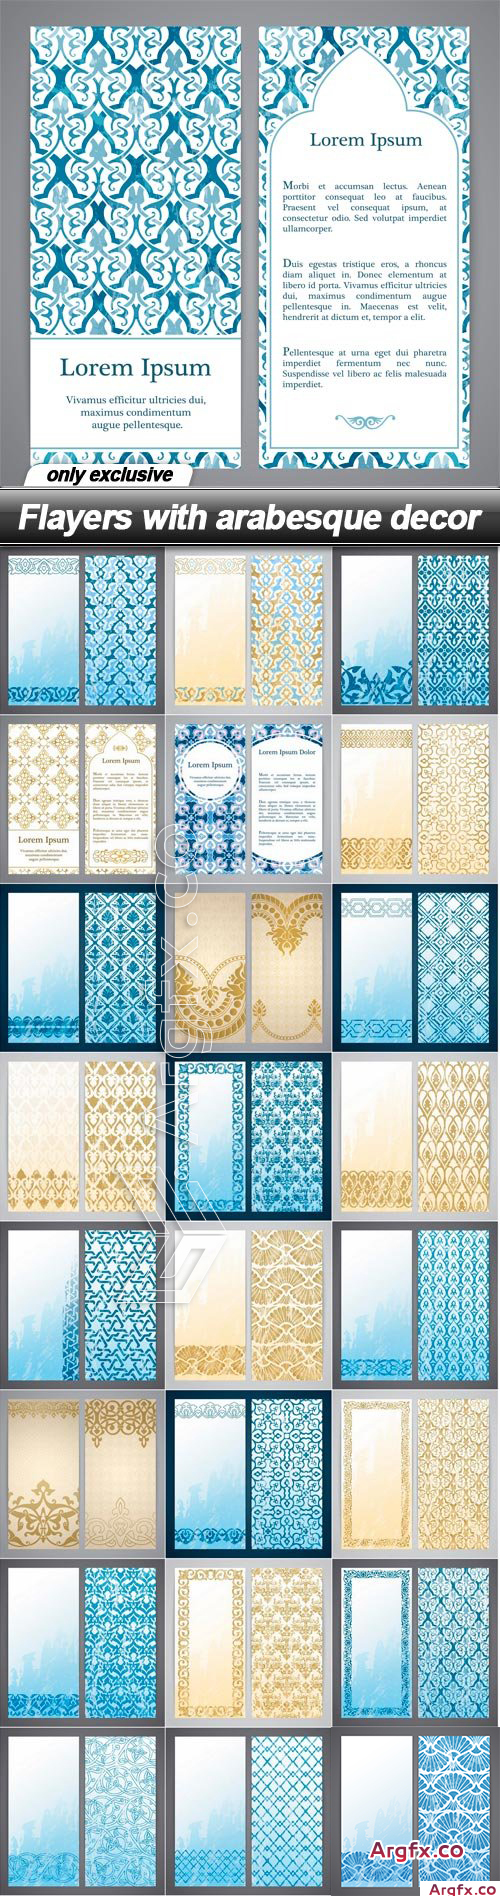 Flayers with arabesque decor - 25 EPS